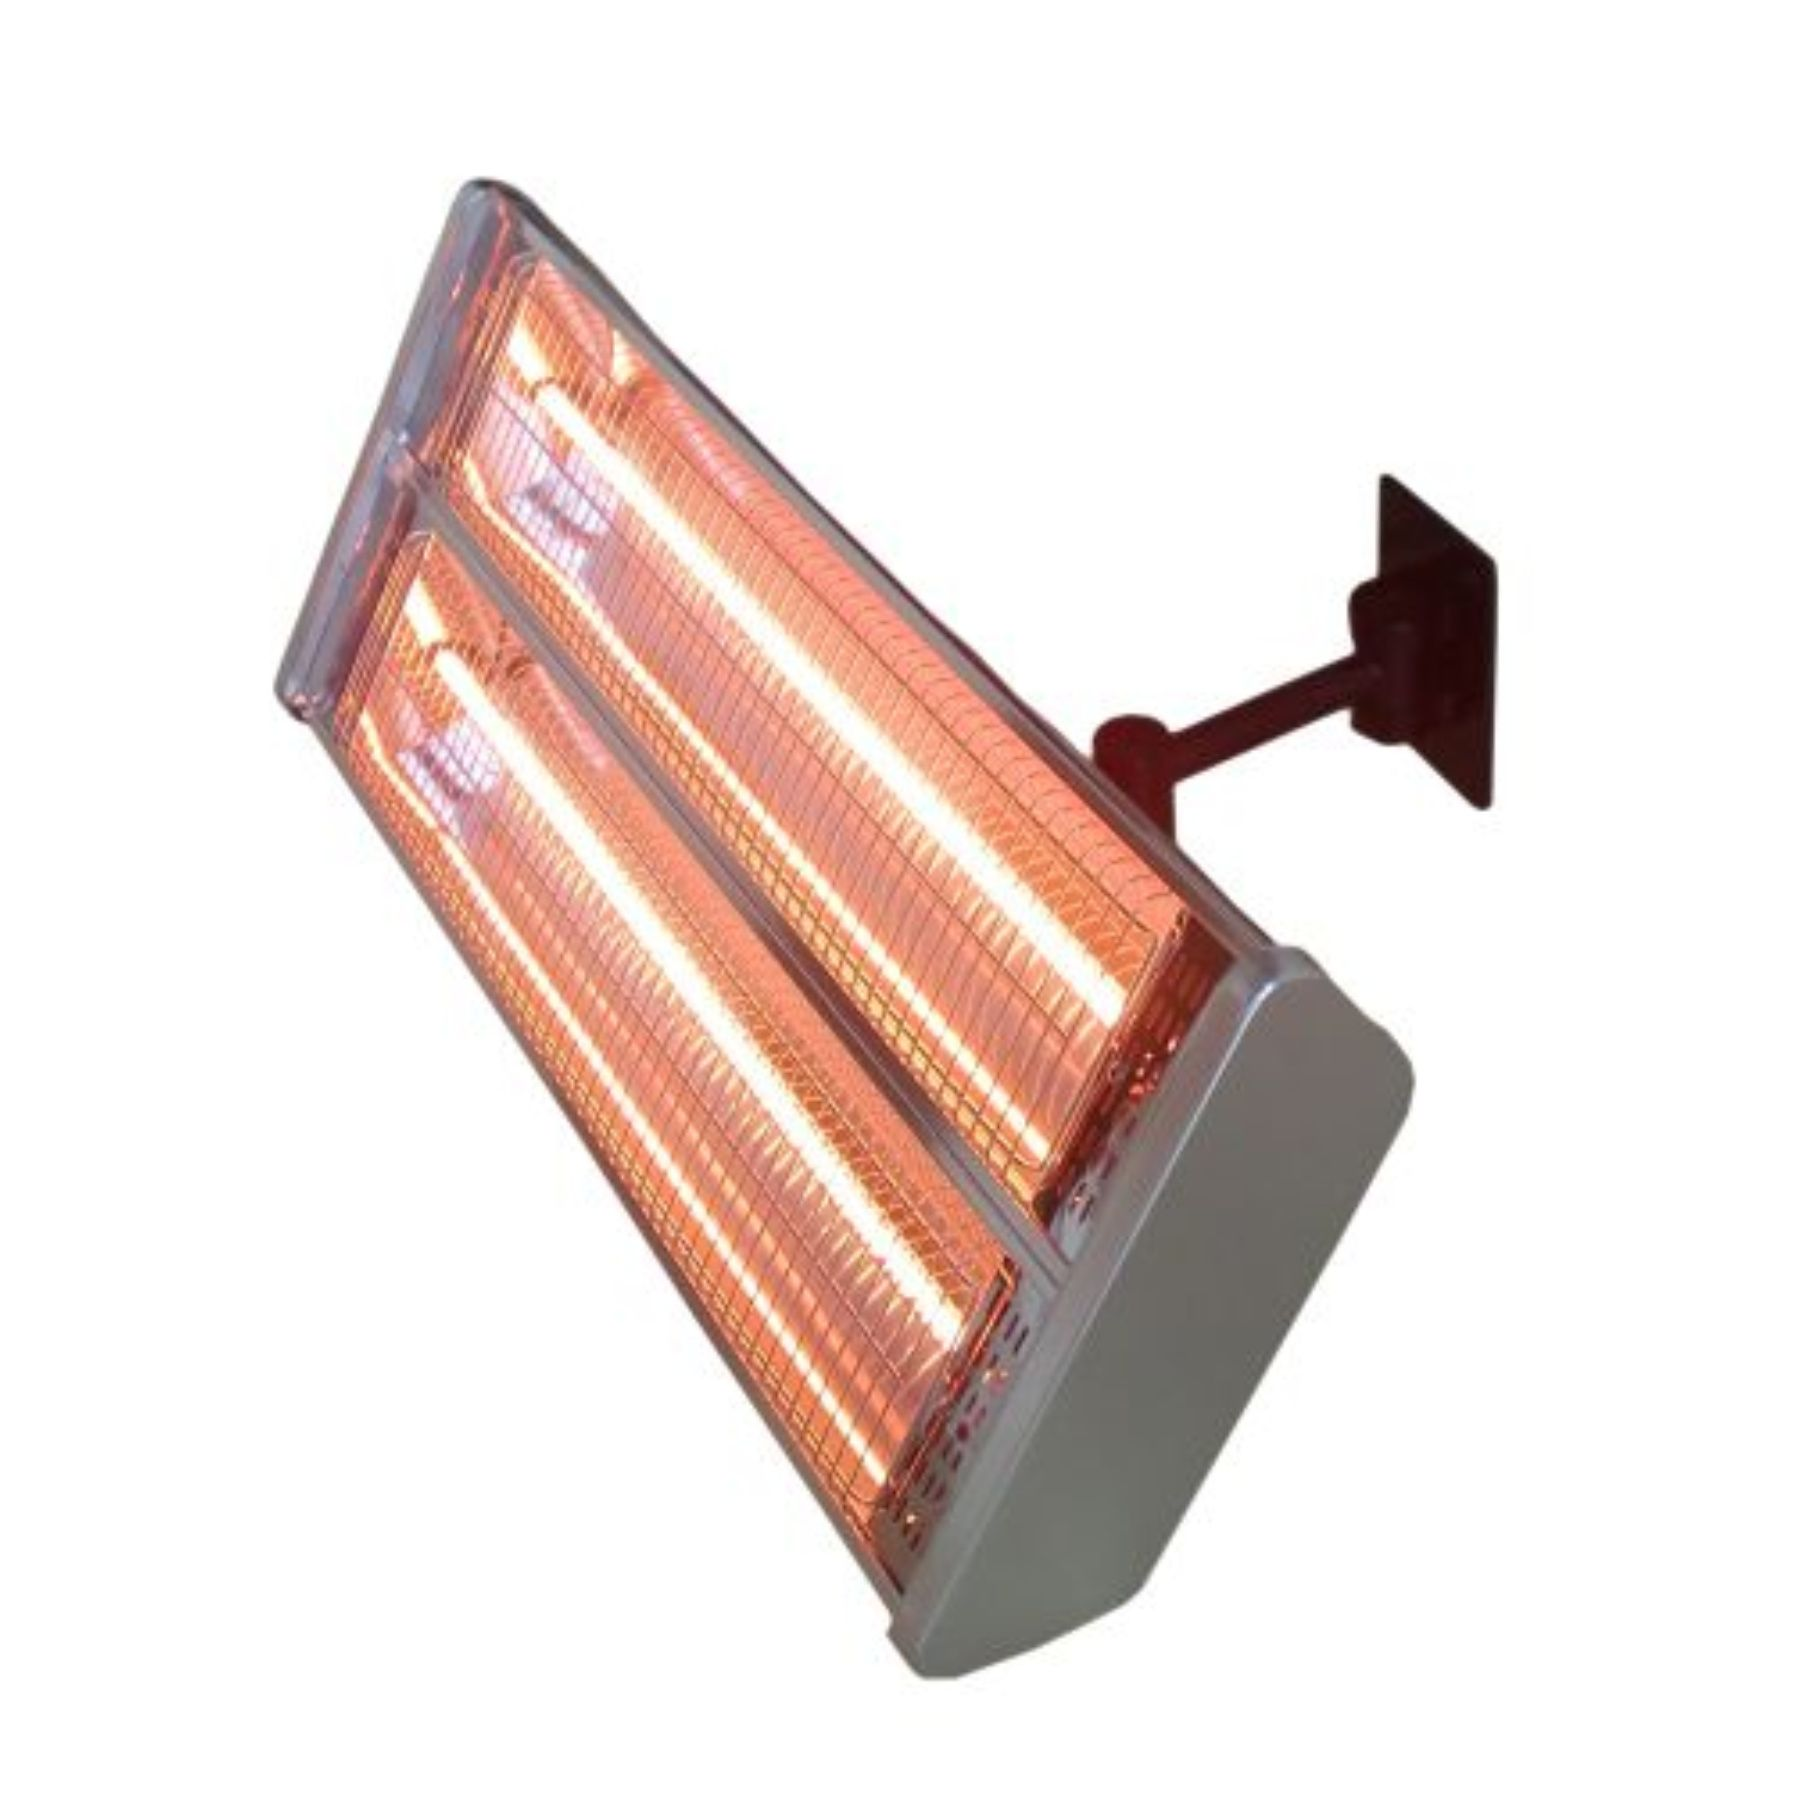 Bathroom Heat Lamp